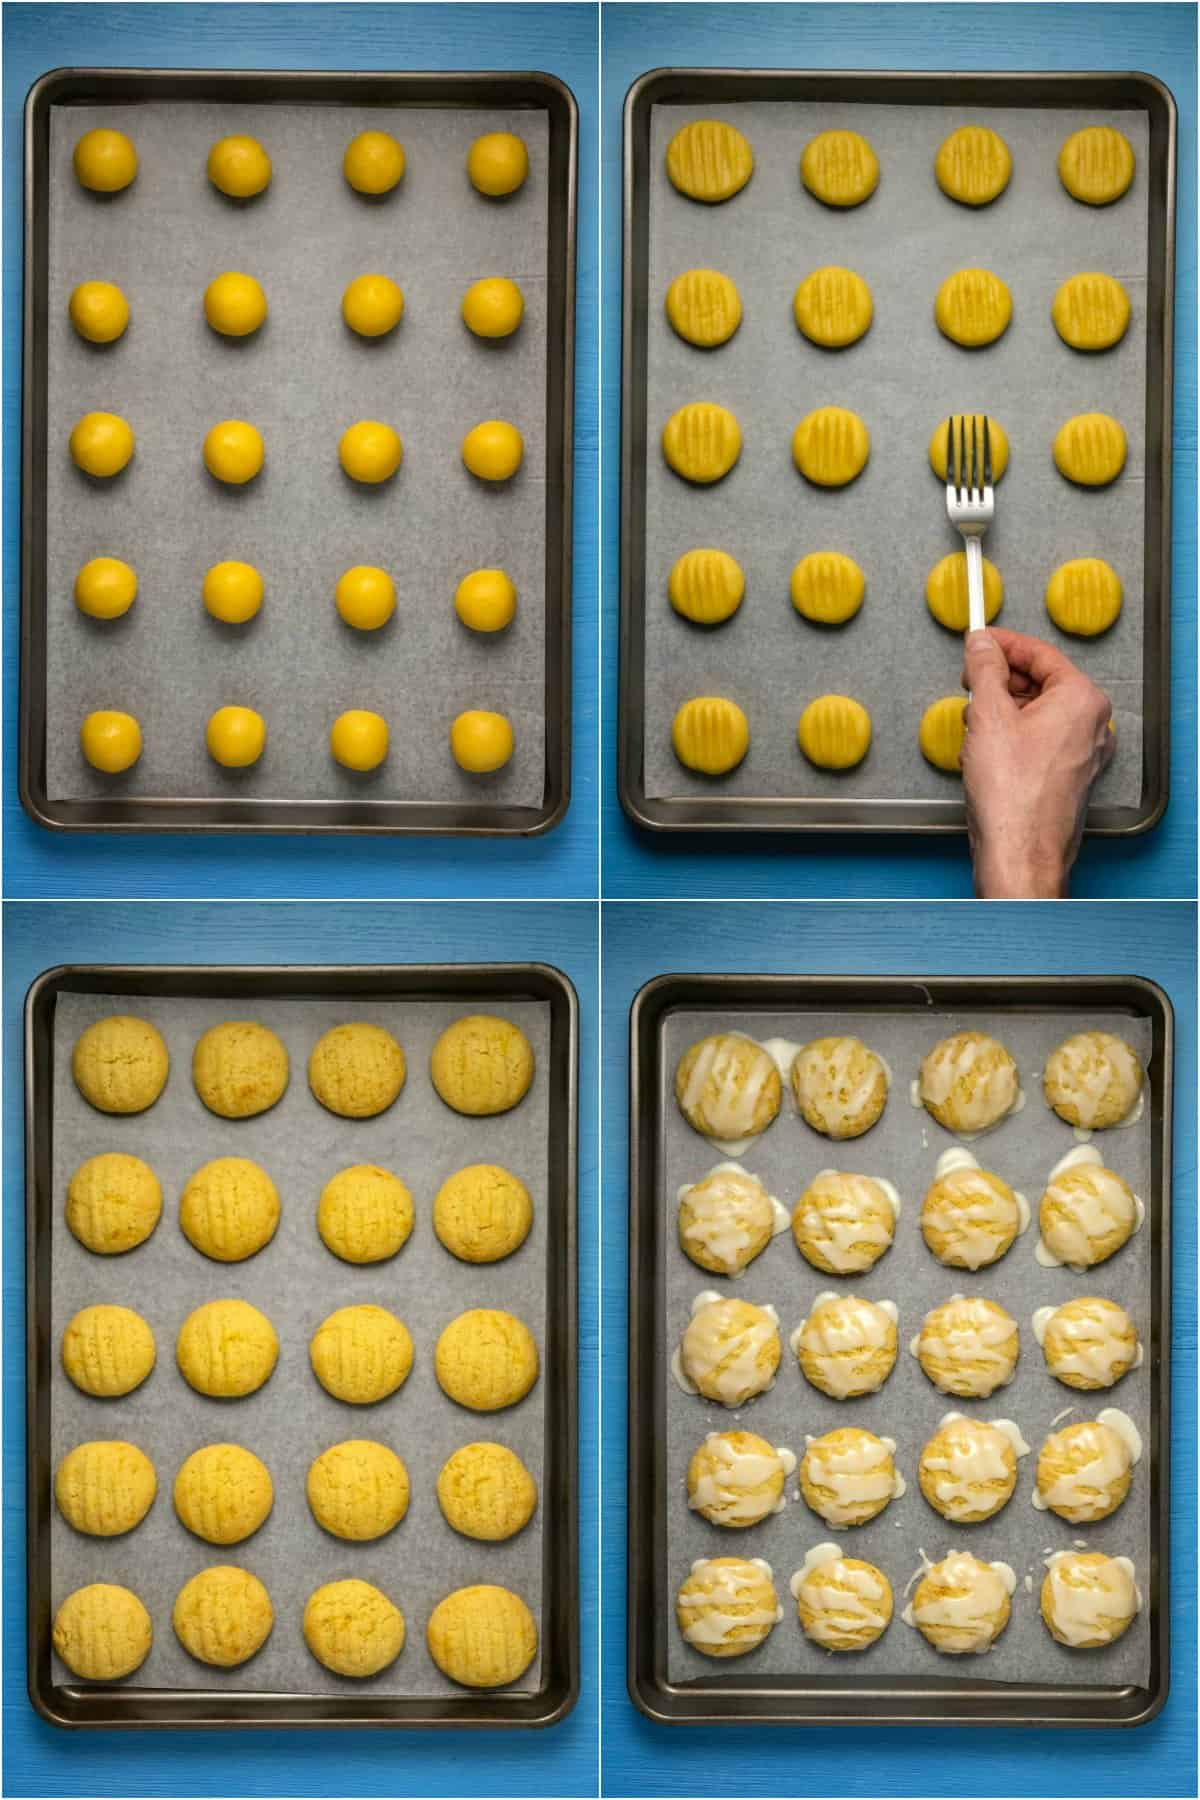 Step by step process photo collage of making lemon cookies.